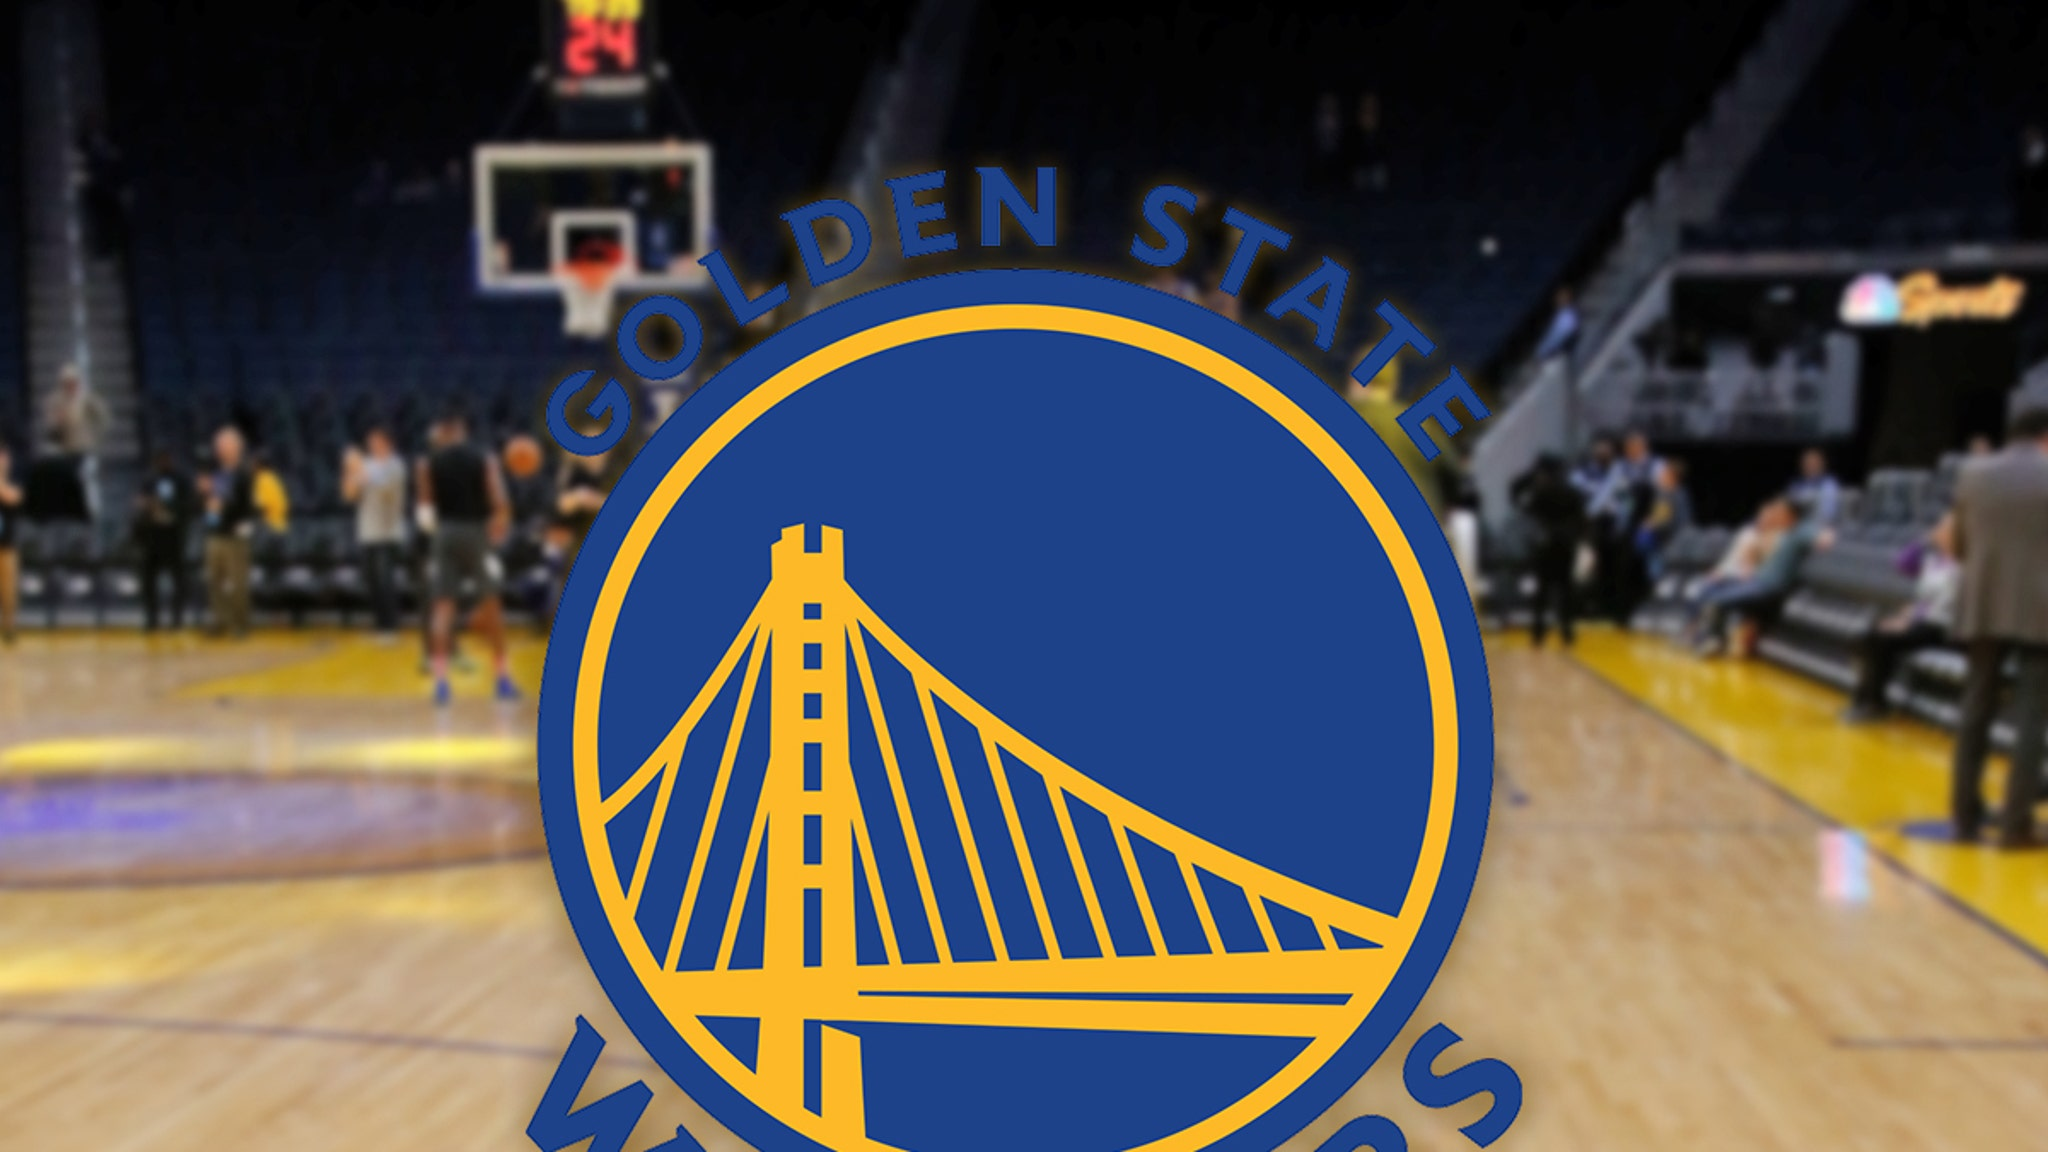 Golden State Warriors Will Play Home Games Without Fans Due To Coronavirus